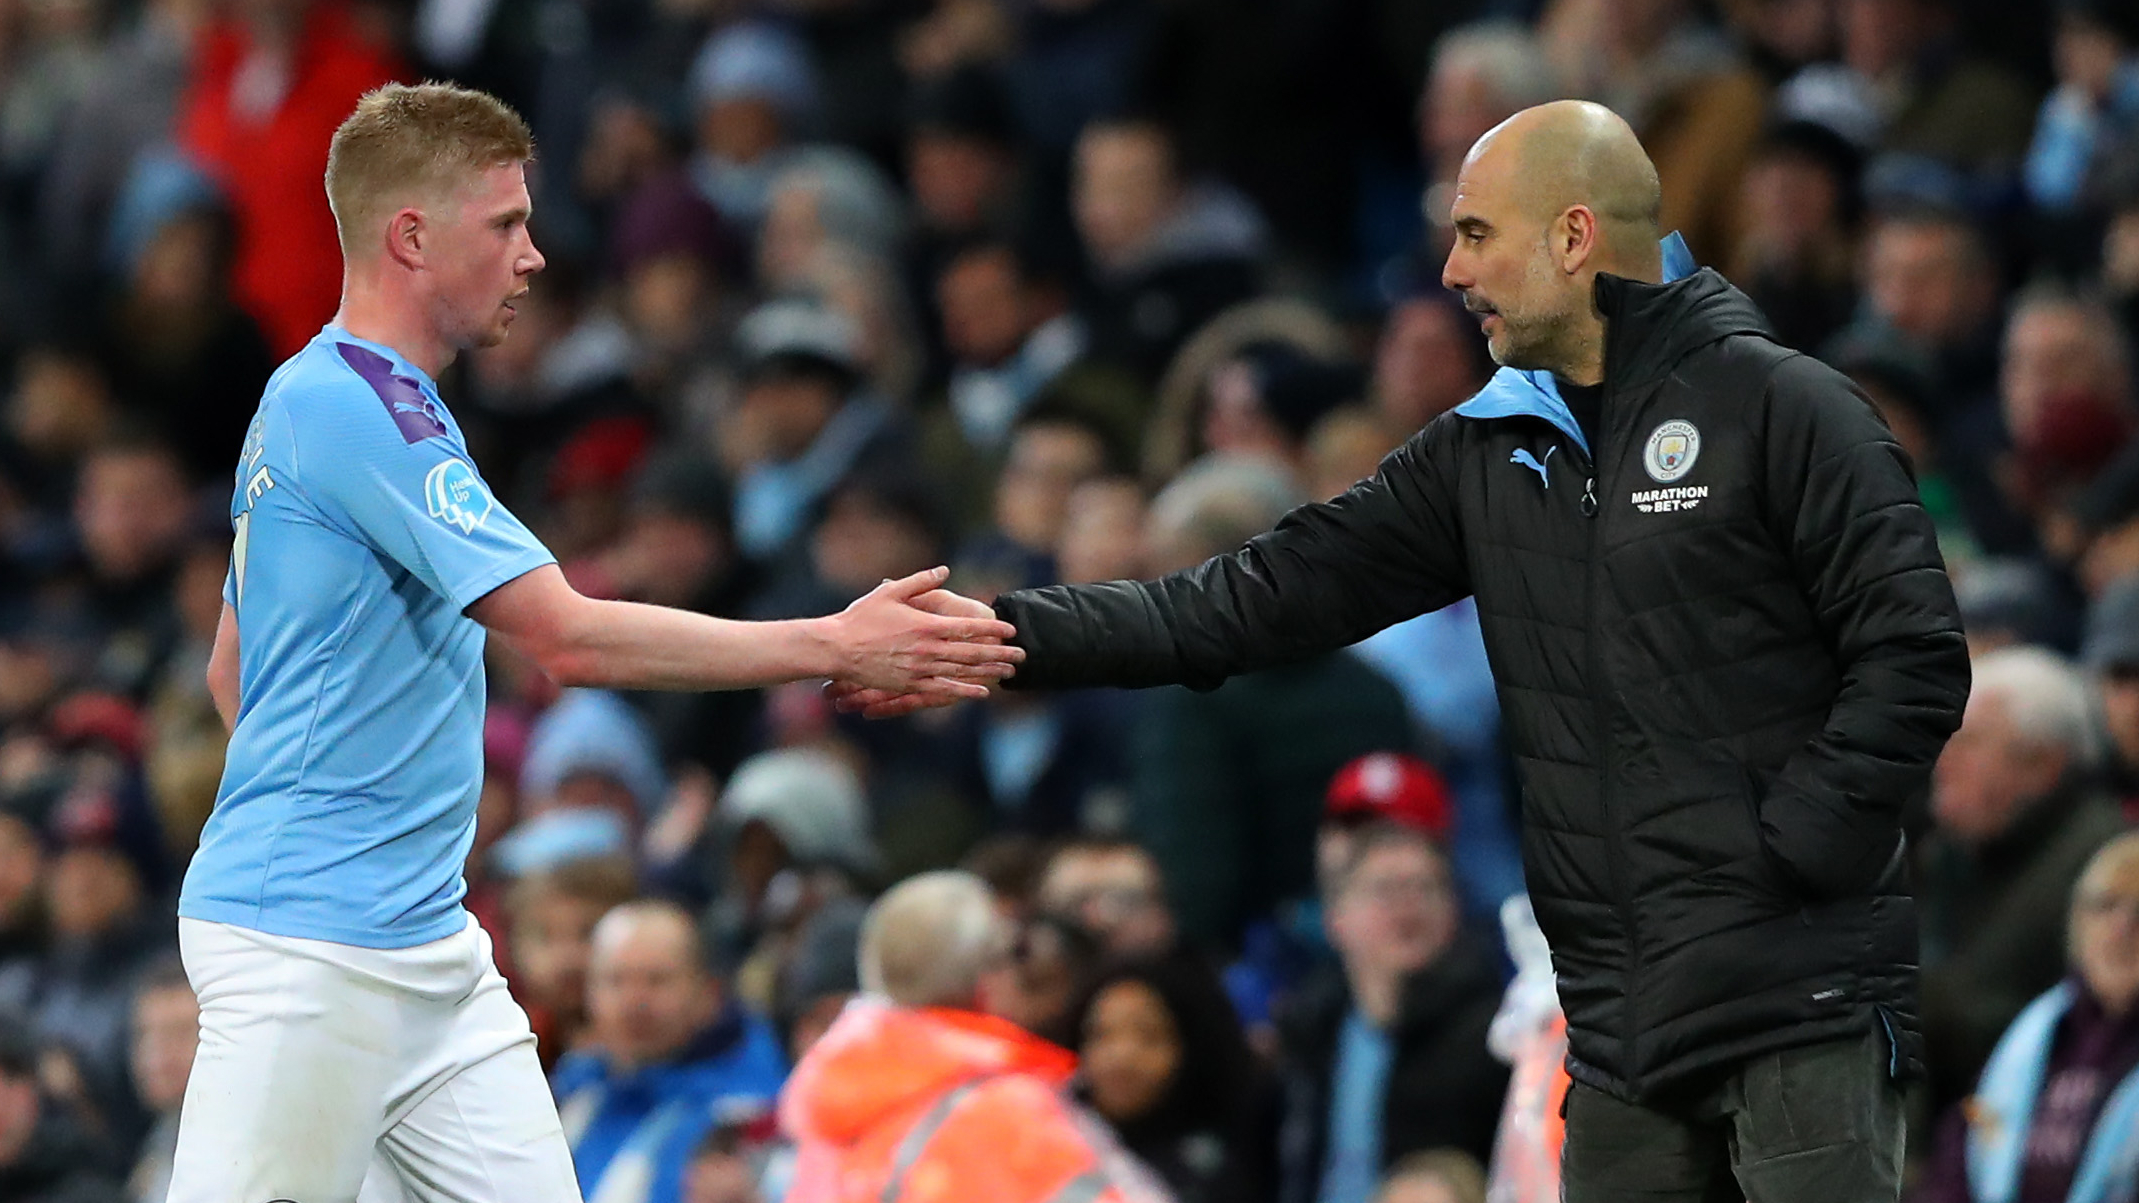 'My head was blown off!' - De Bruyne says it is difficult to adapt to Manchester City boss Guardiola's tactics